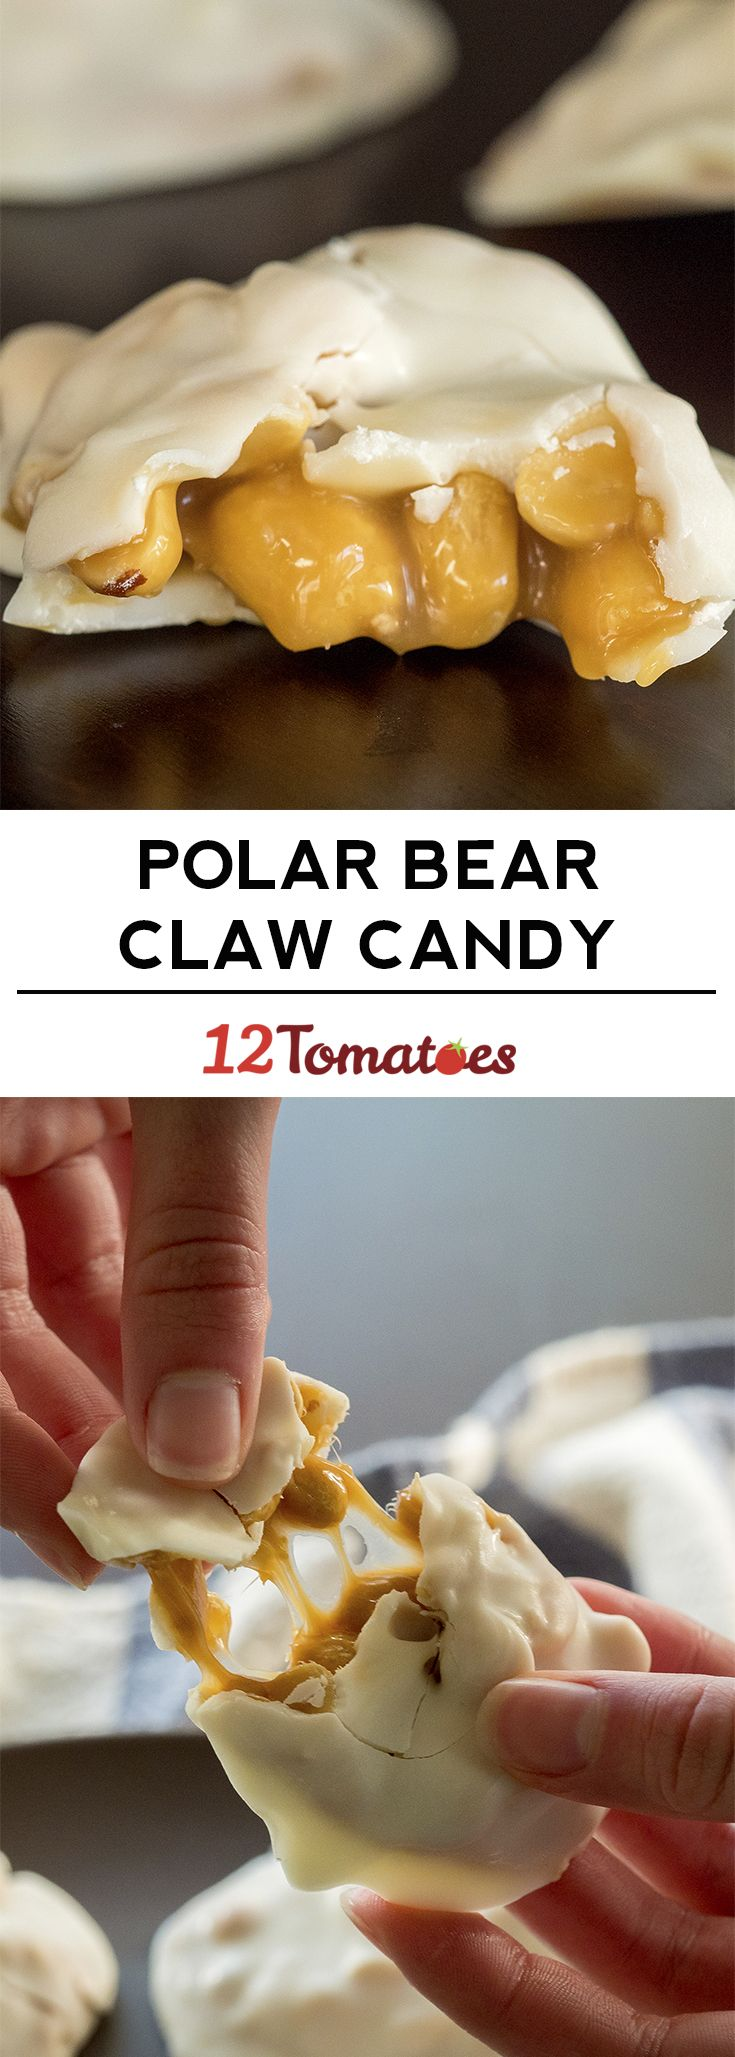 Polar Bear Claw Candies